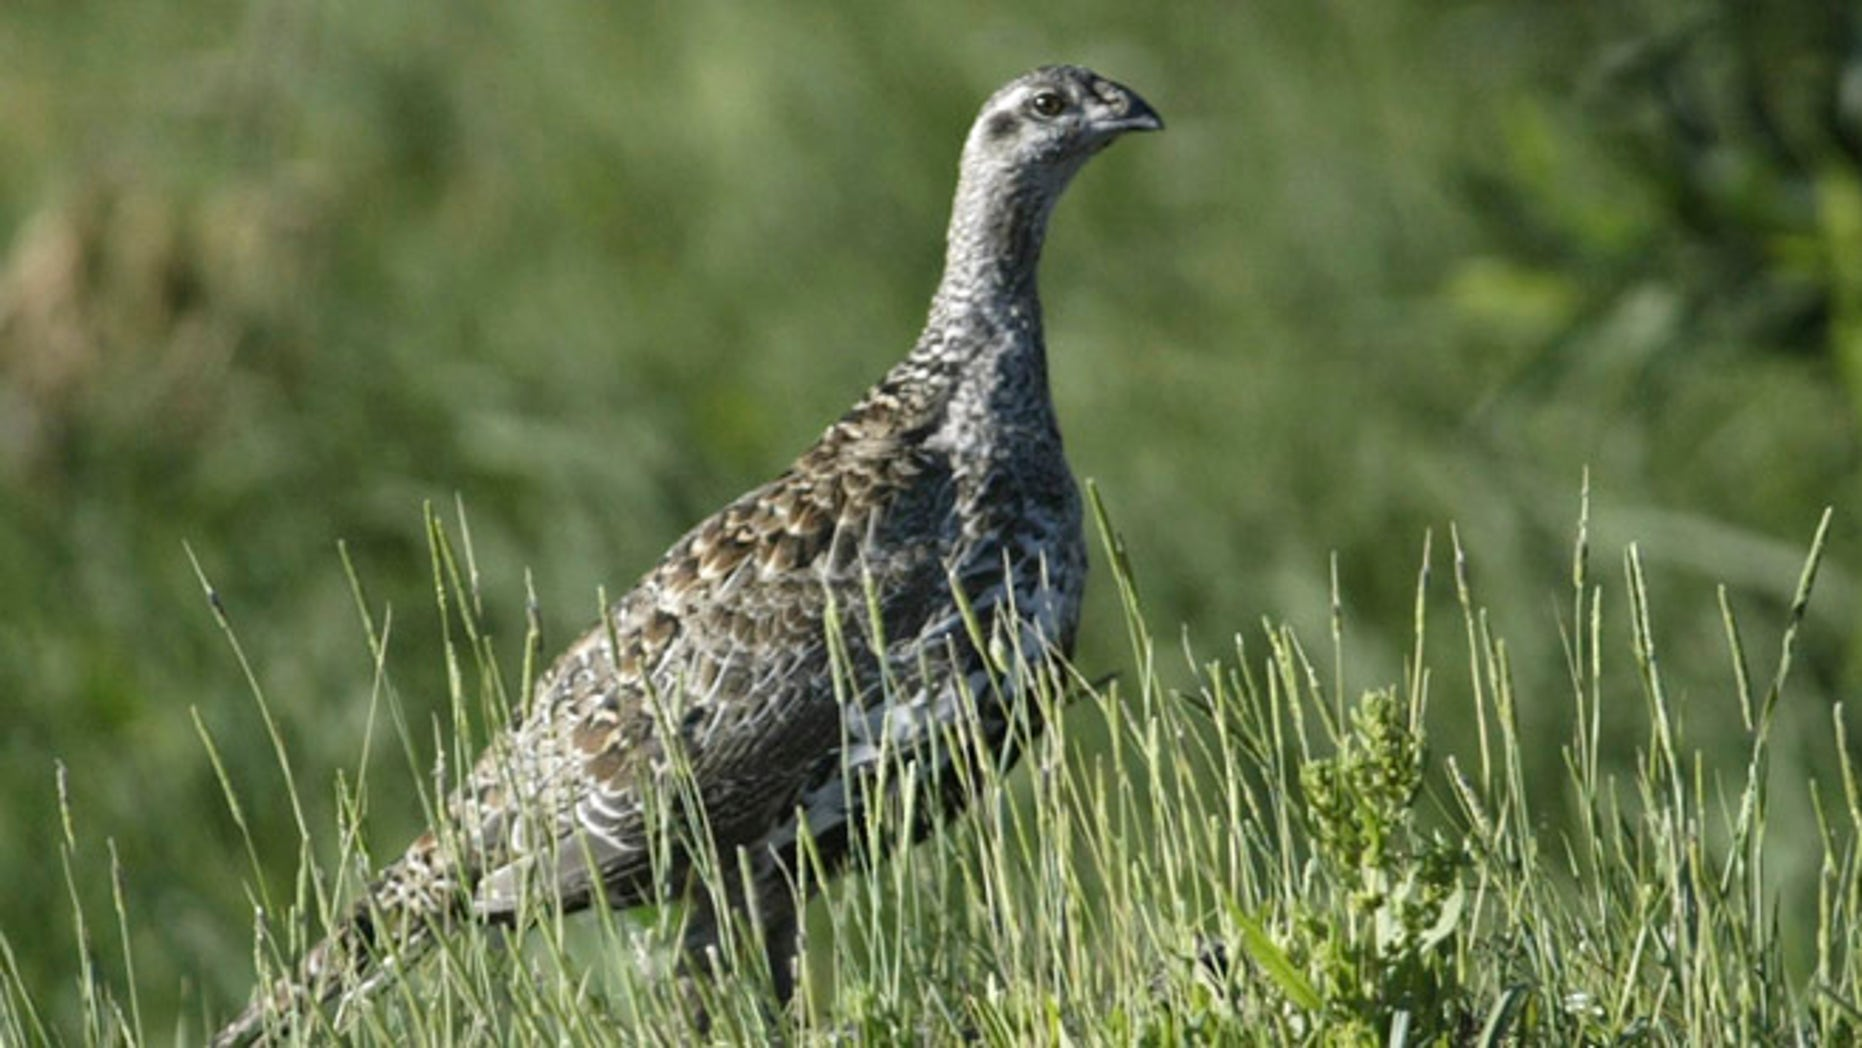 July 25, 2005: In this file photo, a sage grouse stands in a meadow at the Smith Creek Ranch, east of Fallon, Nev. (AP)